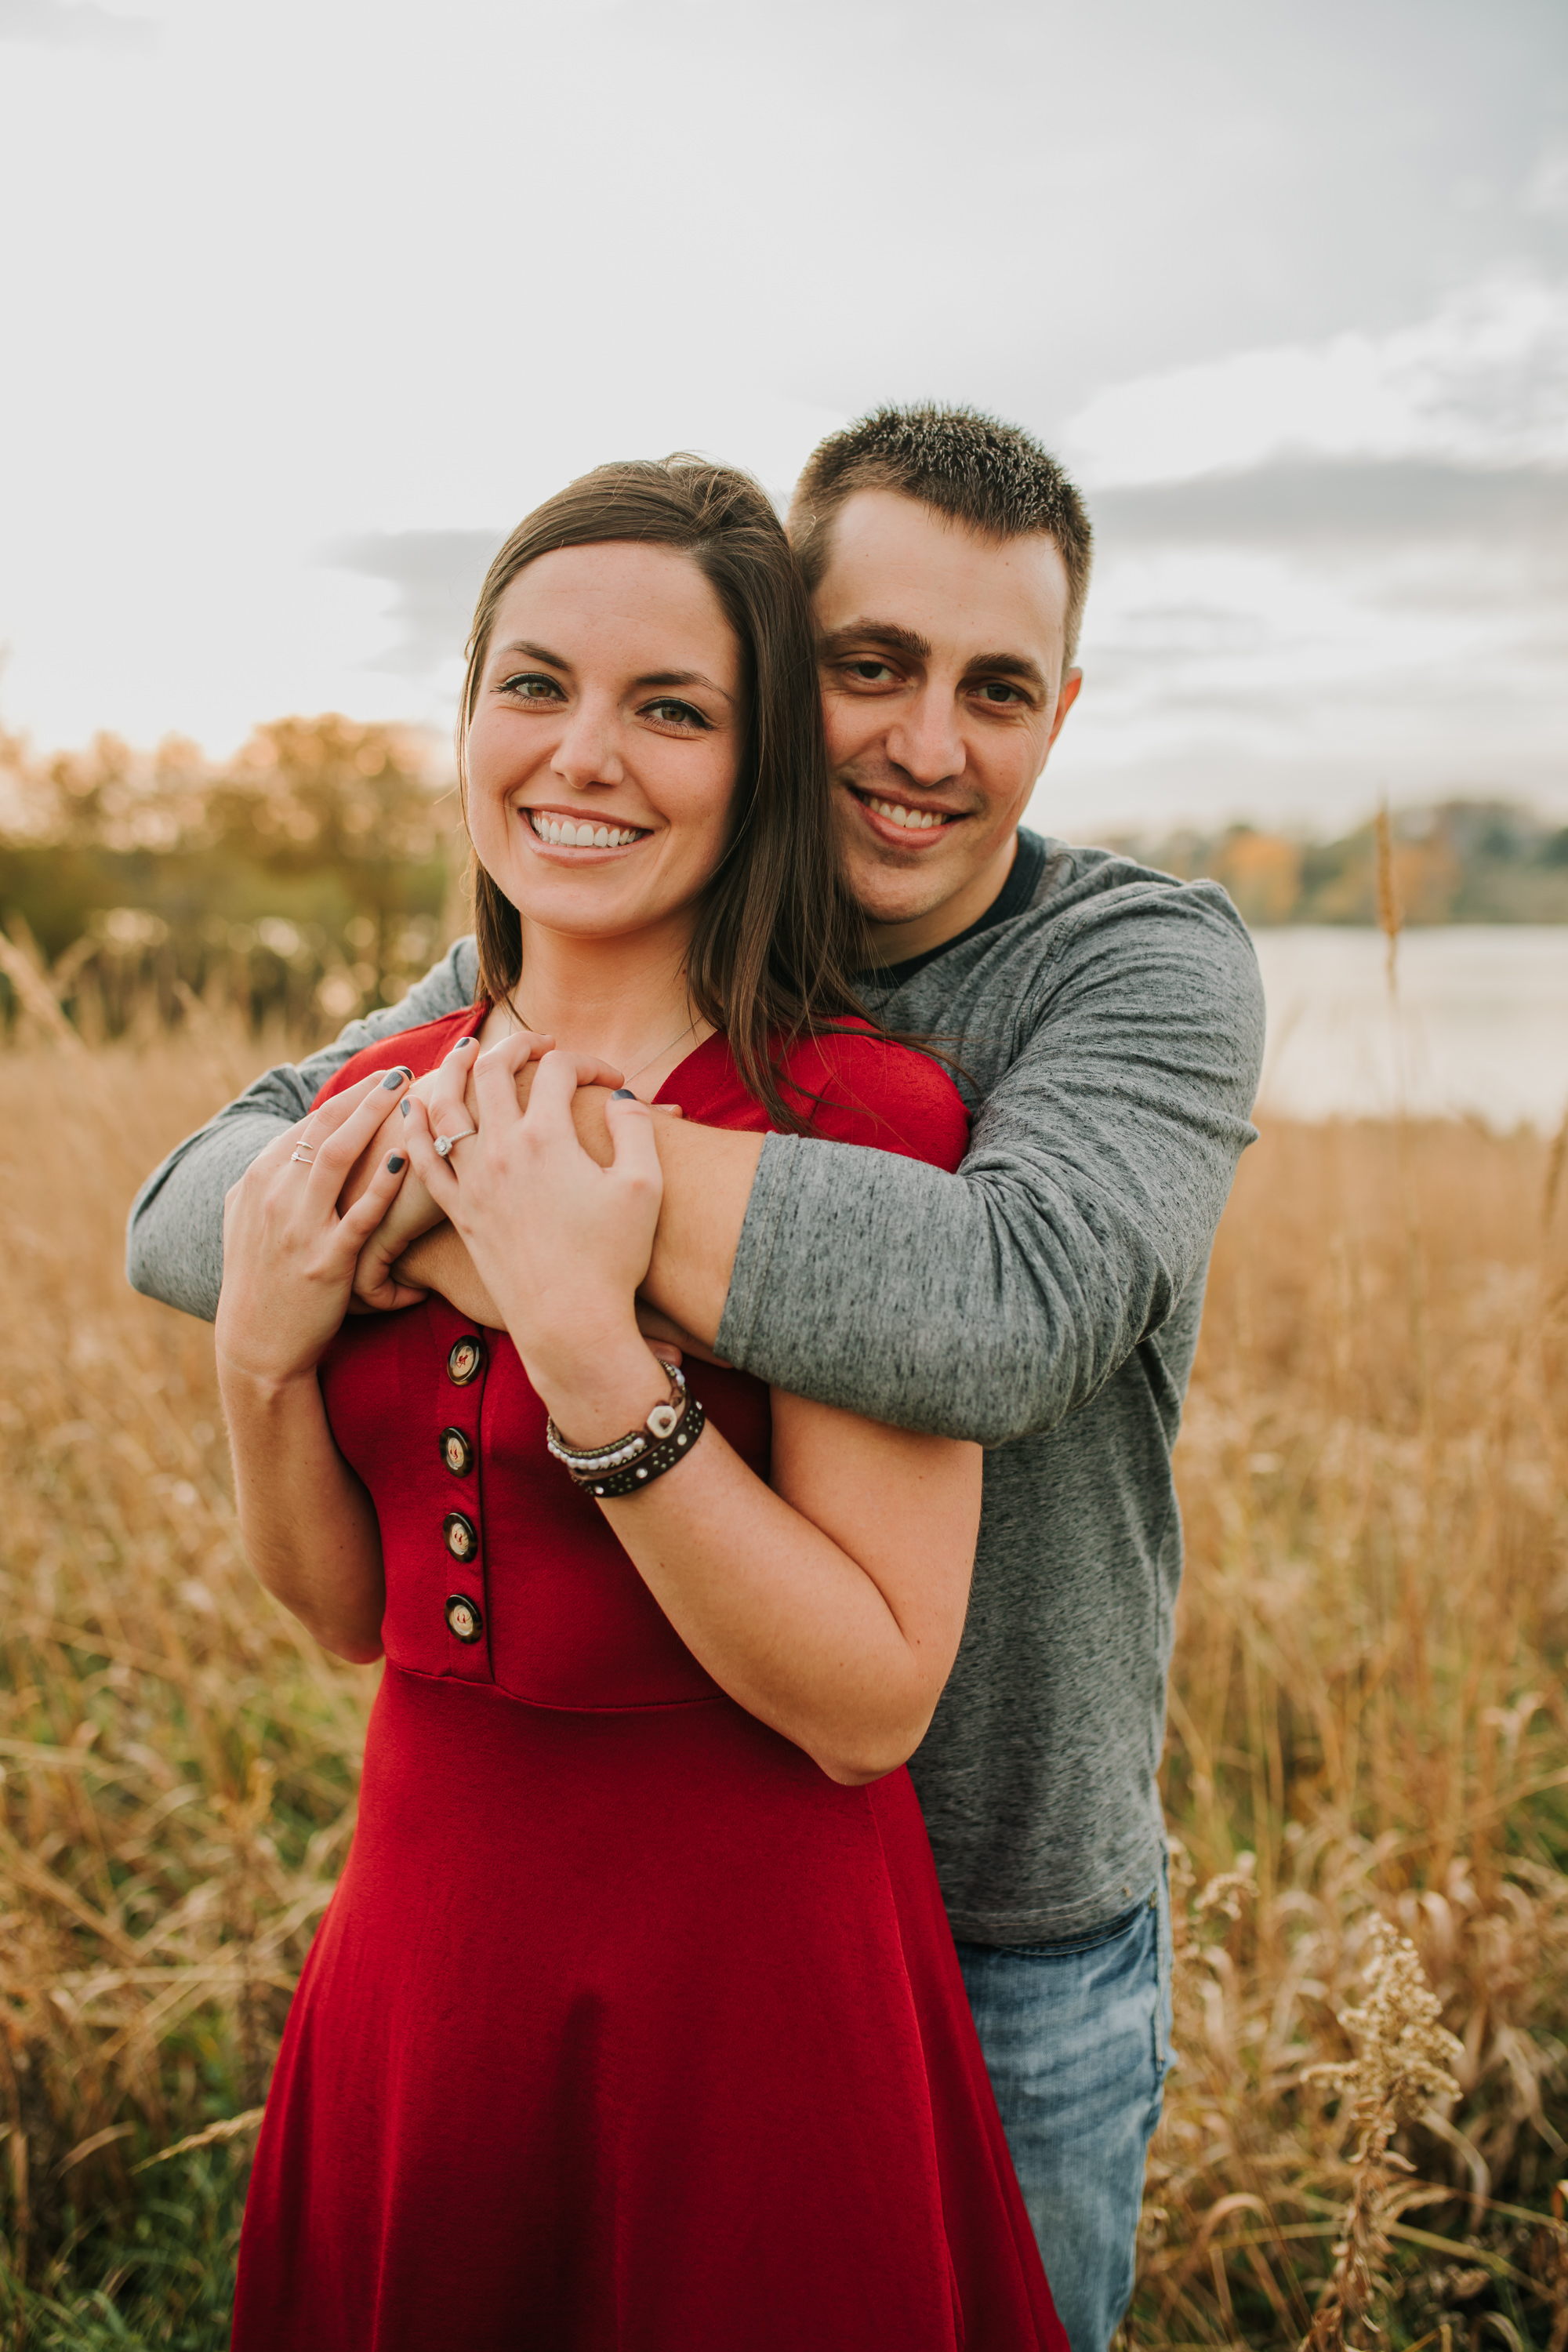 Hannah & Brett - Engaged - Nathaniel Jensen Photography - Omaha Nebraska Wedding Photograper - Omaha Nebraska Engagement Session - Chalco Hills Engagement Session-92.jpg